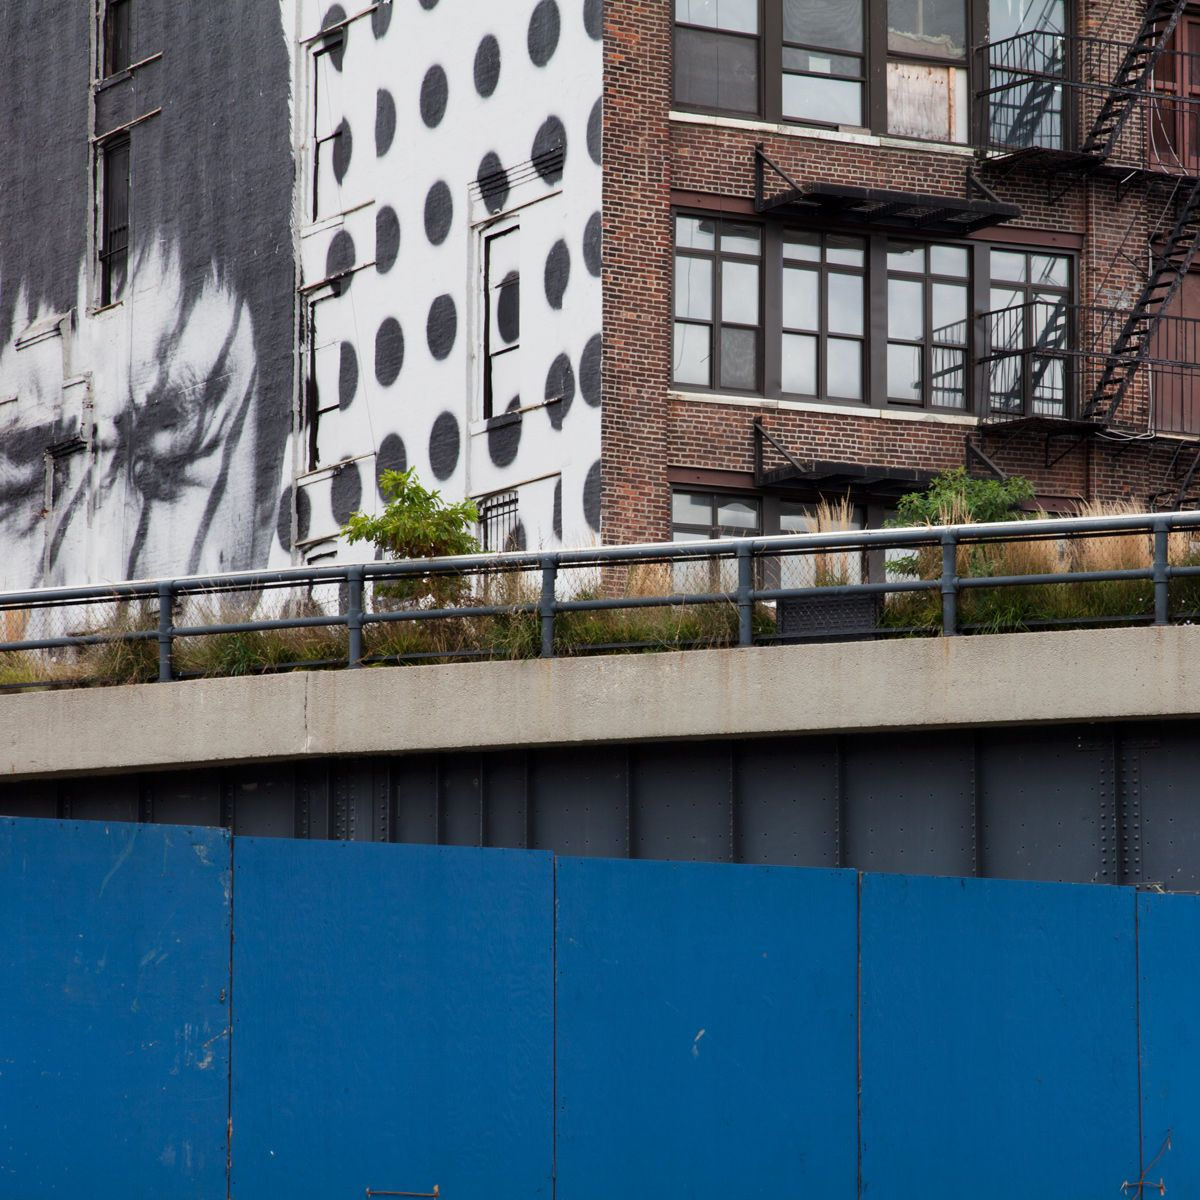 Untitled, from The High Line: An Abstract Nature